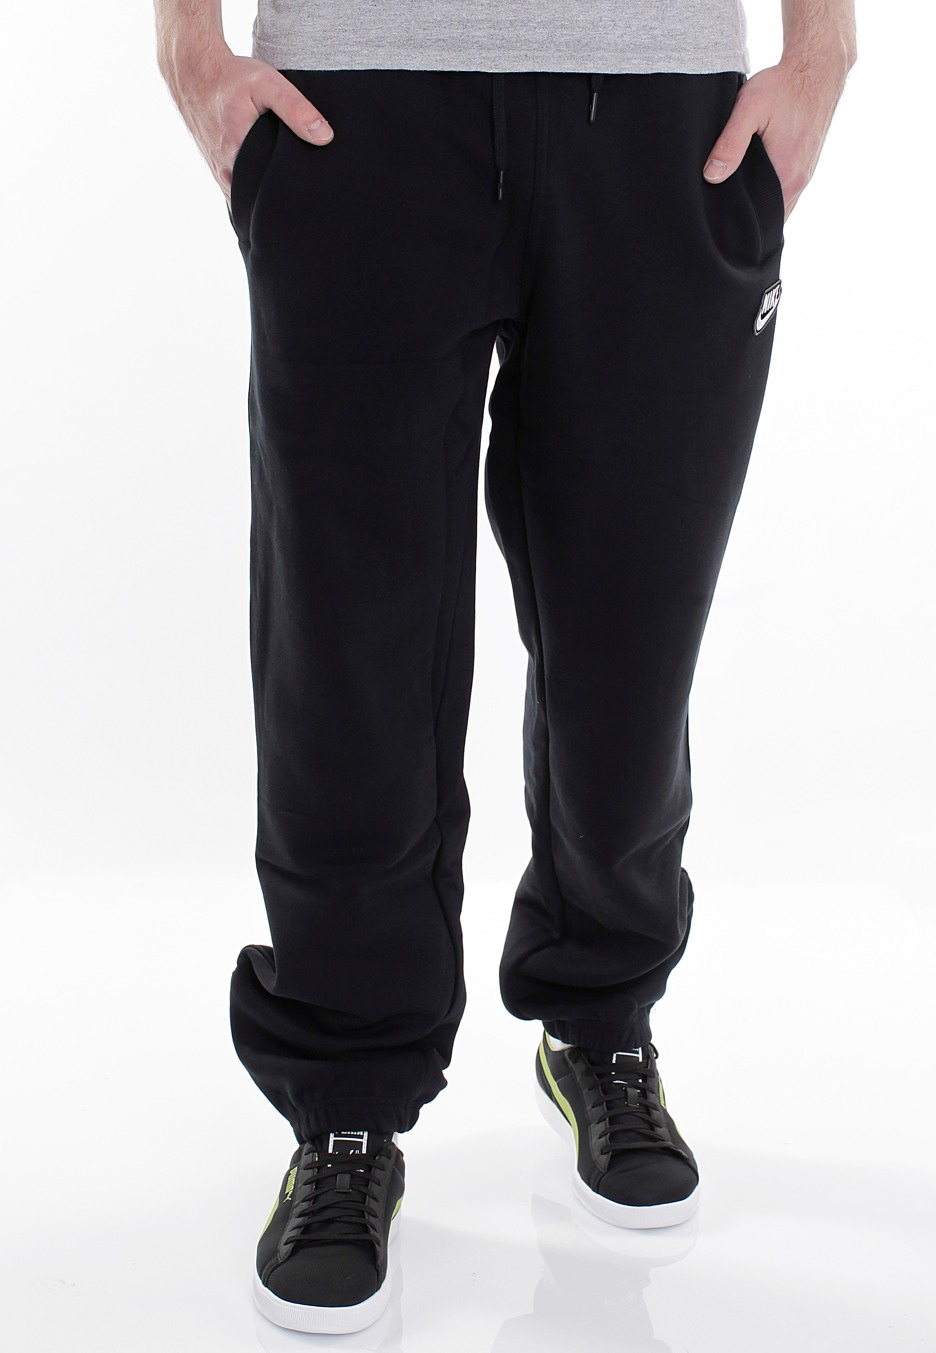 % Wool Cuff Pants offers a knit cuff with a 32″ inseam. Featuring two front pockets and two back pockets with button flaps. Buttons For Suspenders Available On 36 in. Waist Size and Up.